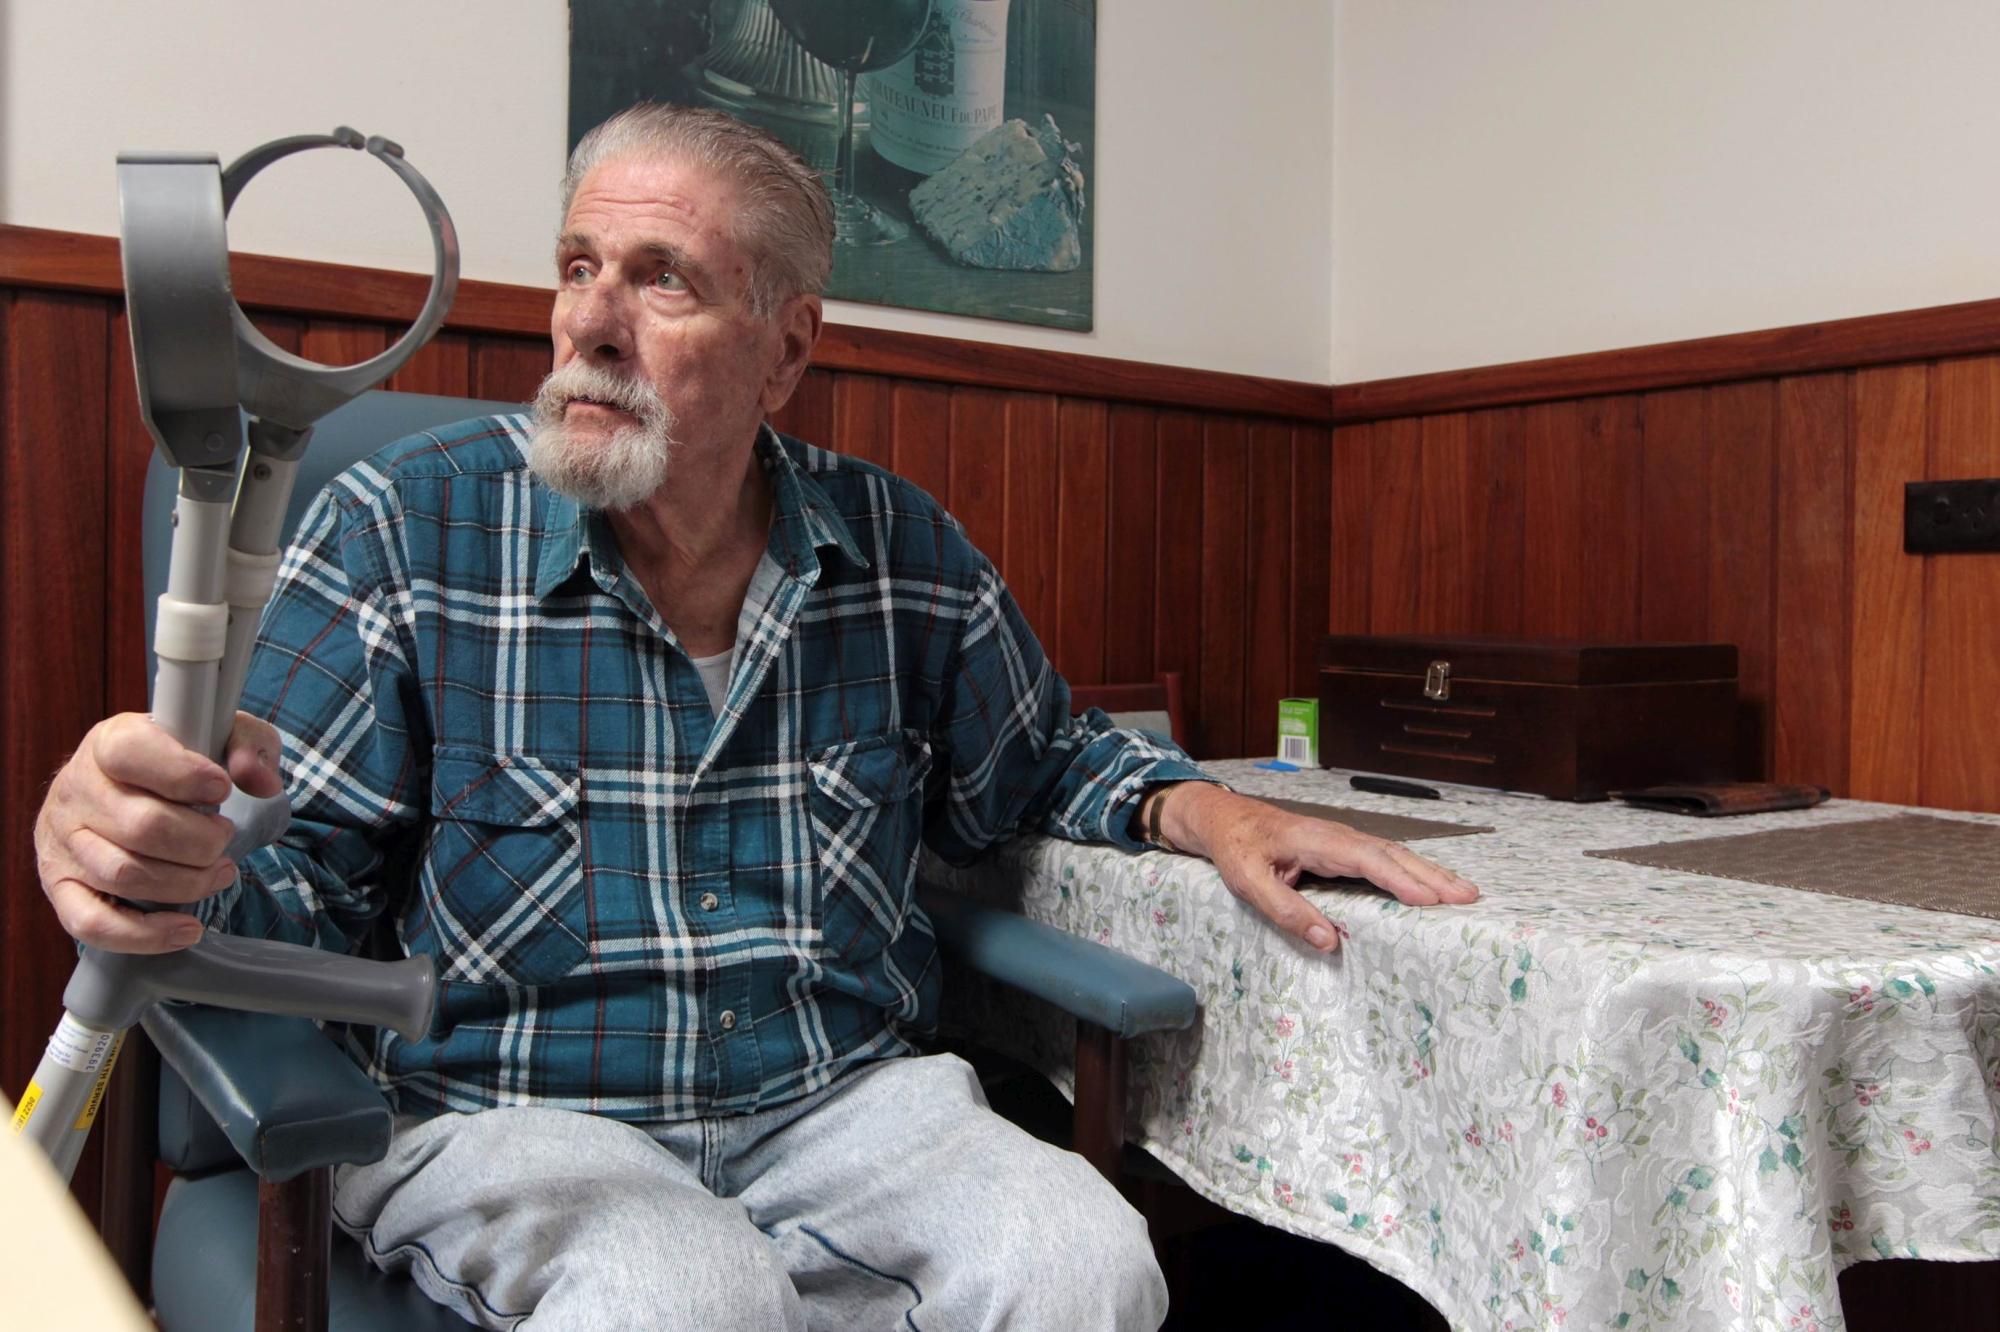 Lindsay Rowe (80) from Armadale has had his house broken into 4 times in a week.